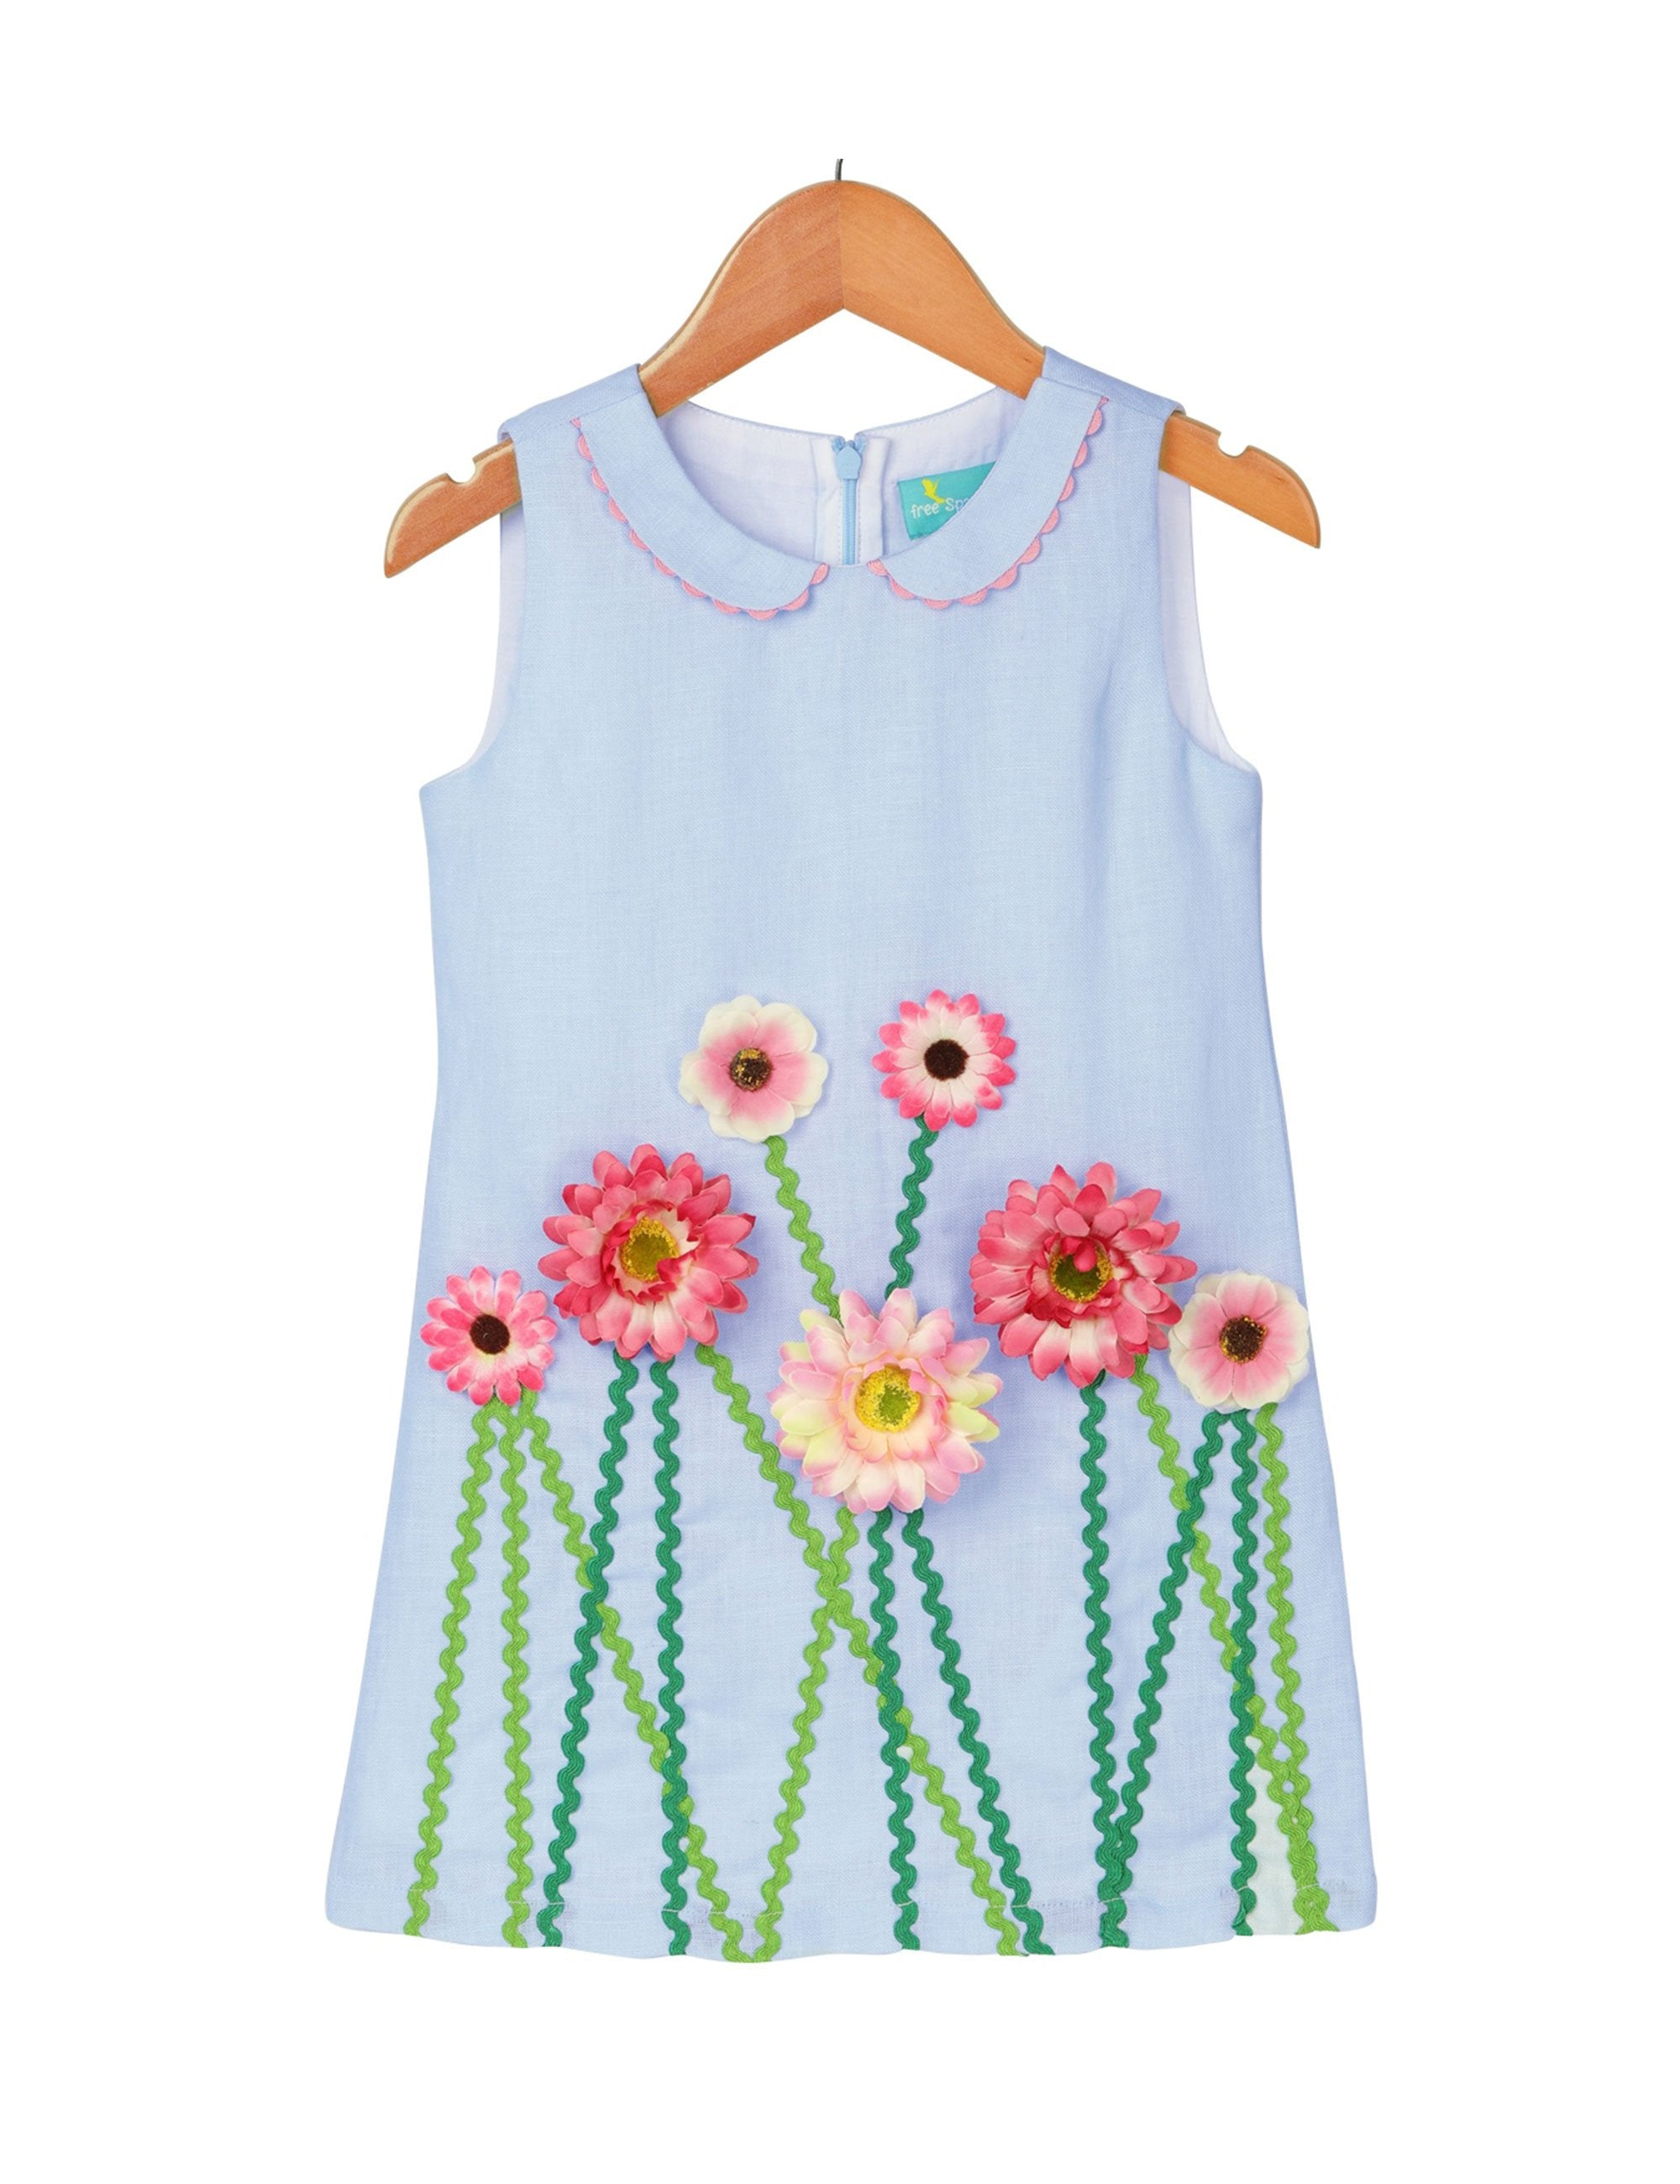 Summer pride dress in blue colour